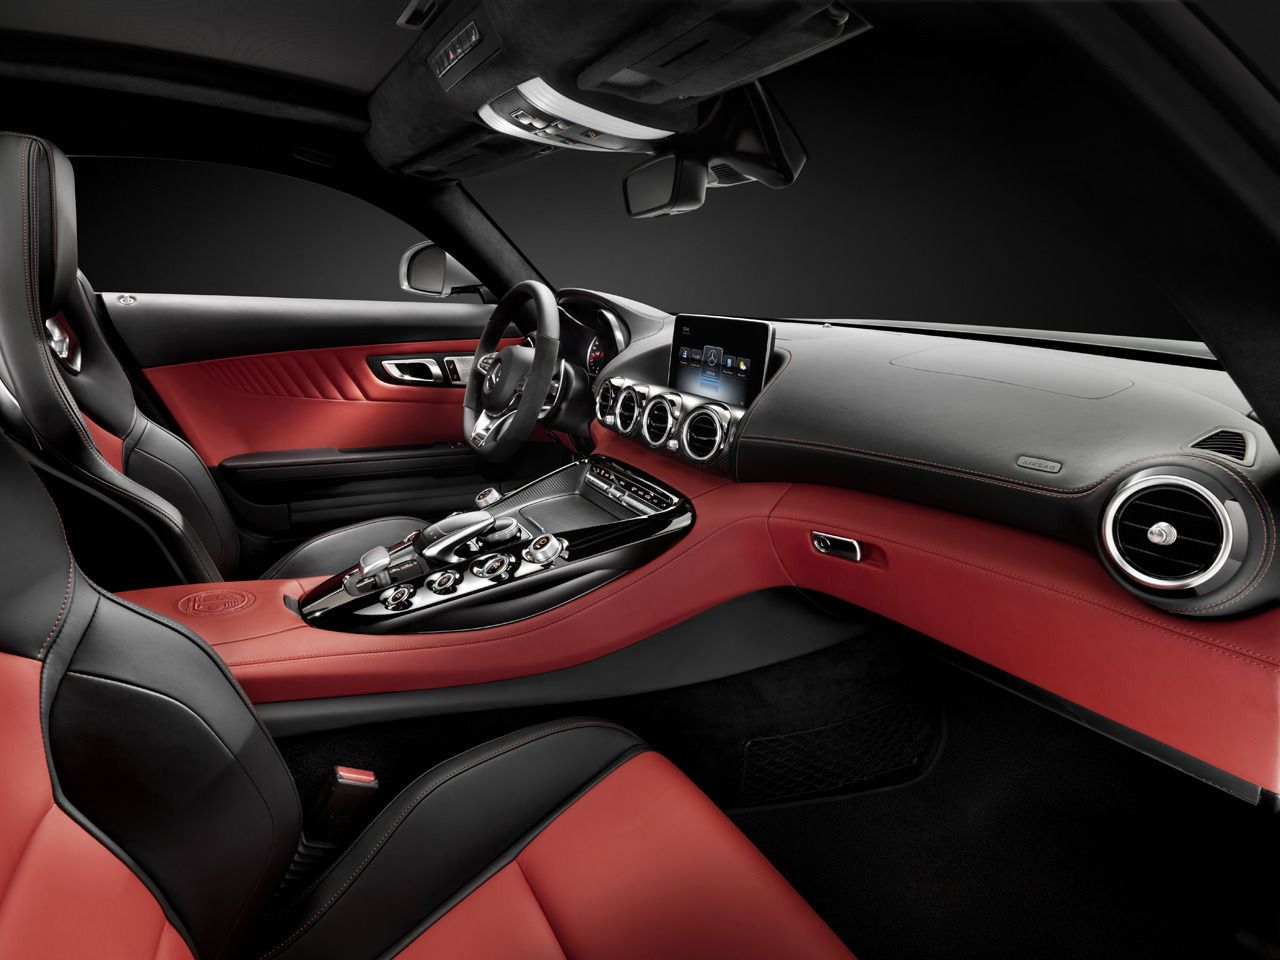 Luxury Sports Car Interior Google Search Luxury Cars Mercedes